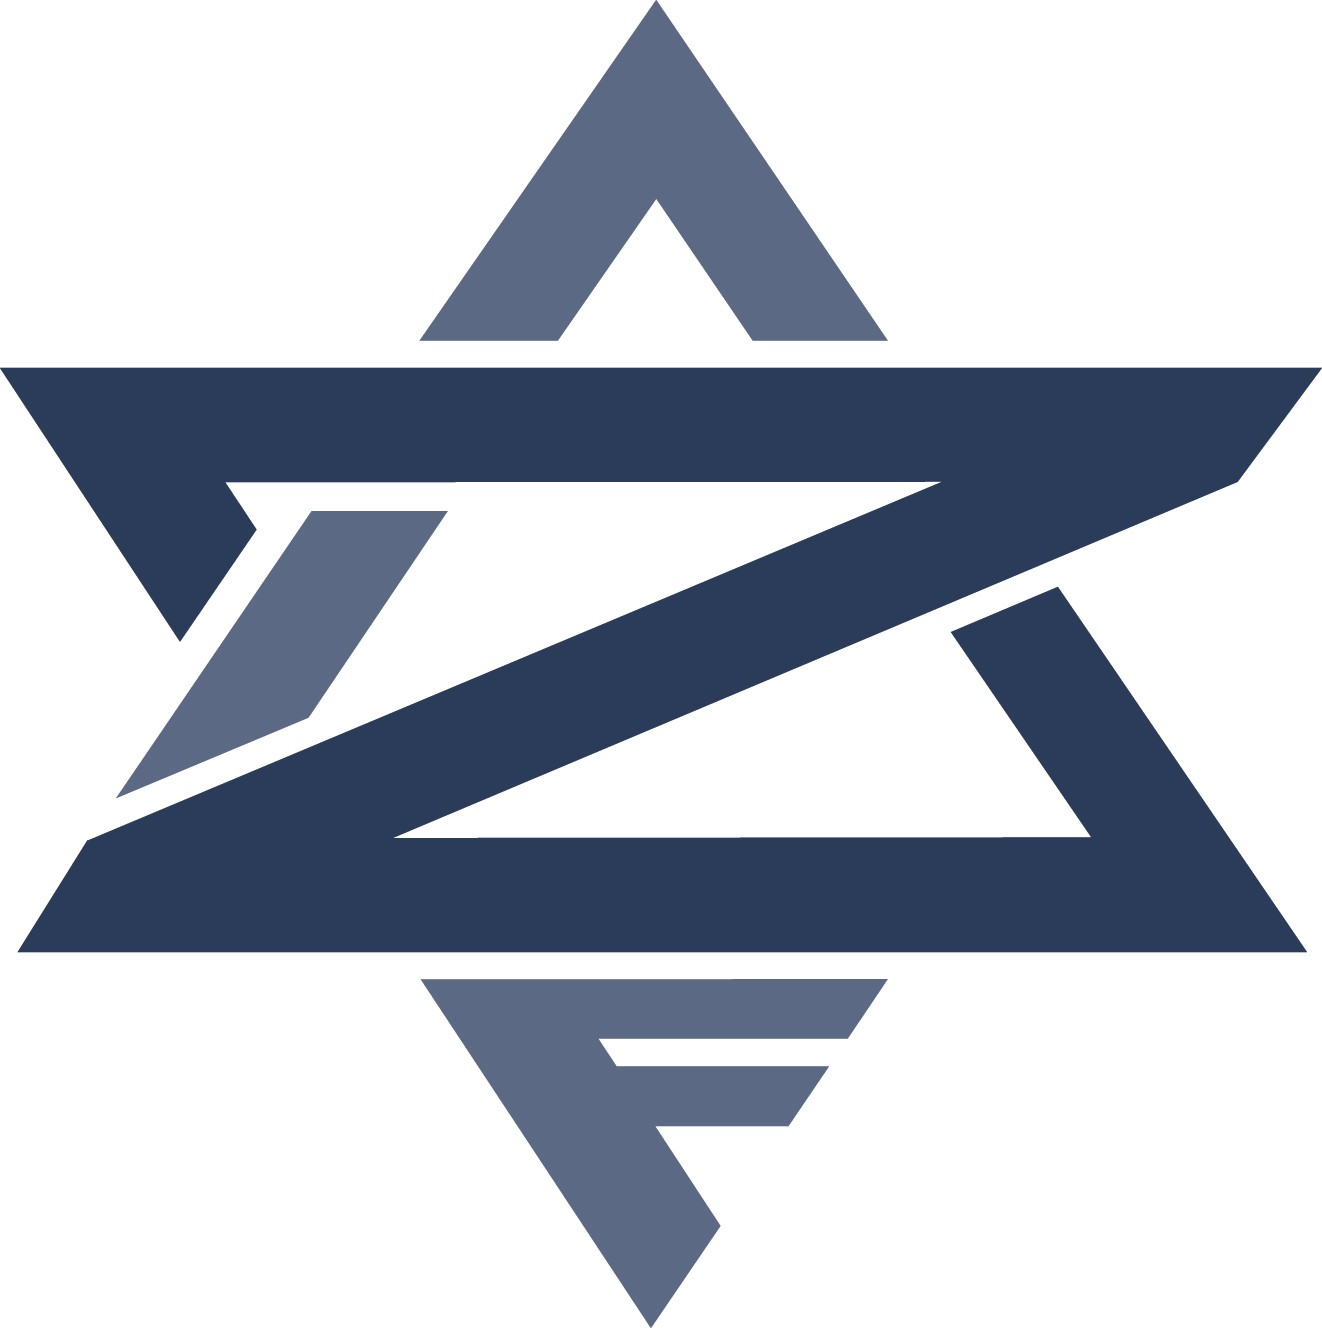 https://ljla.org.au/wp-content/uploads/2013/05/ZFA-Symbol-Only-Colour.jpg